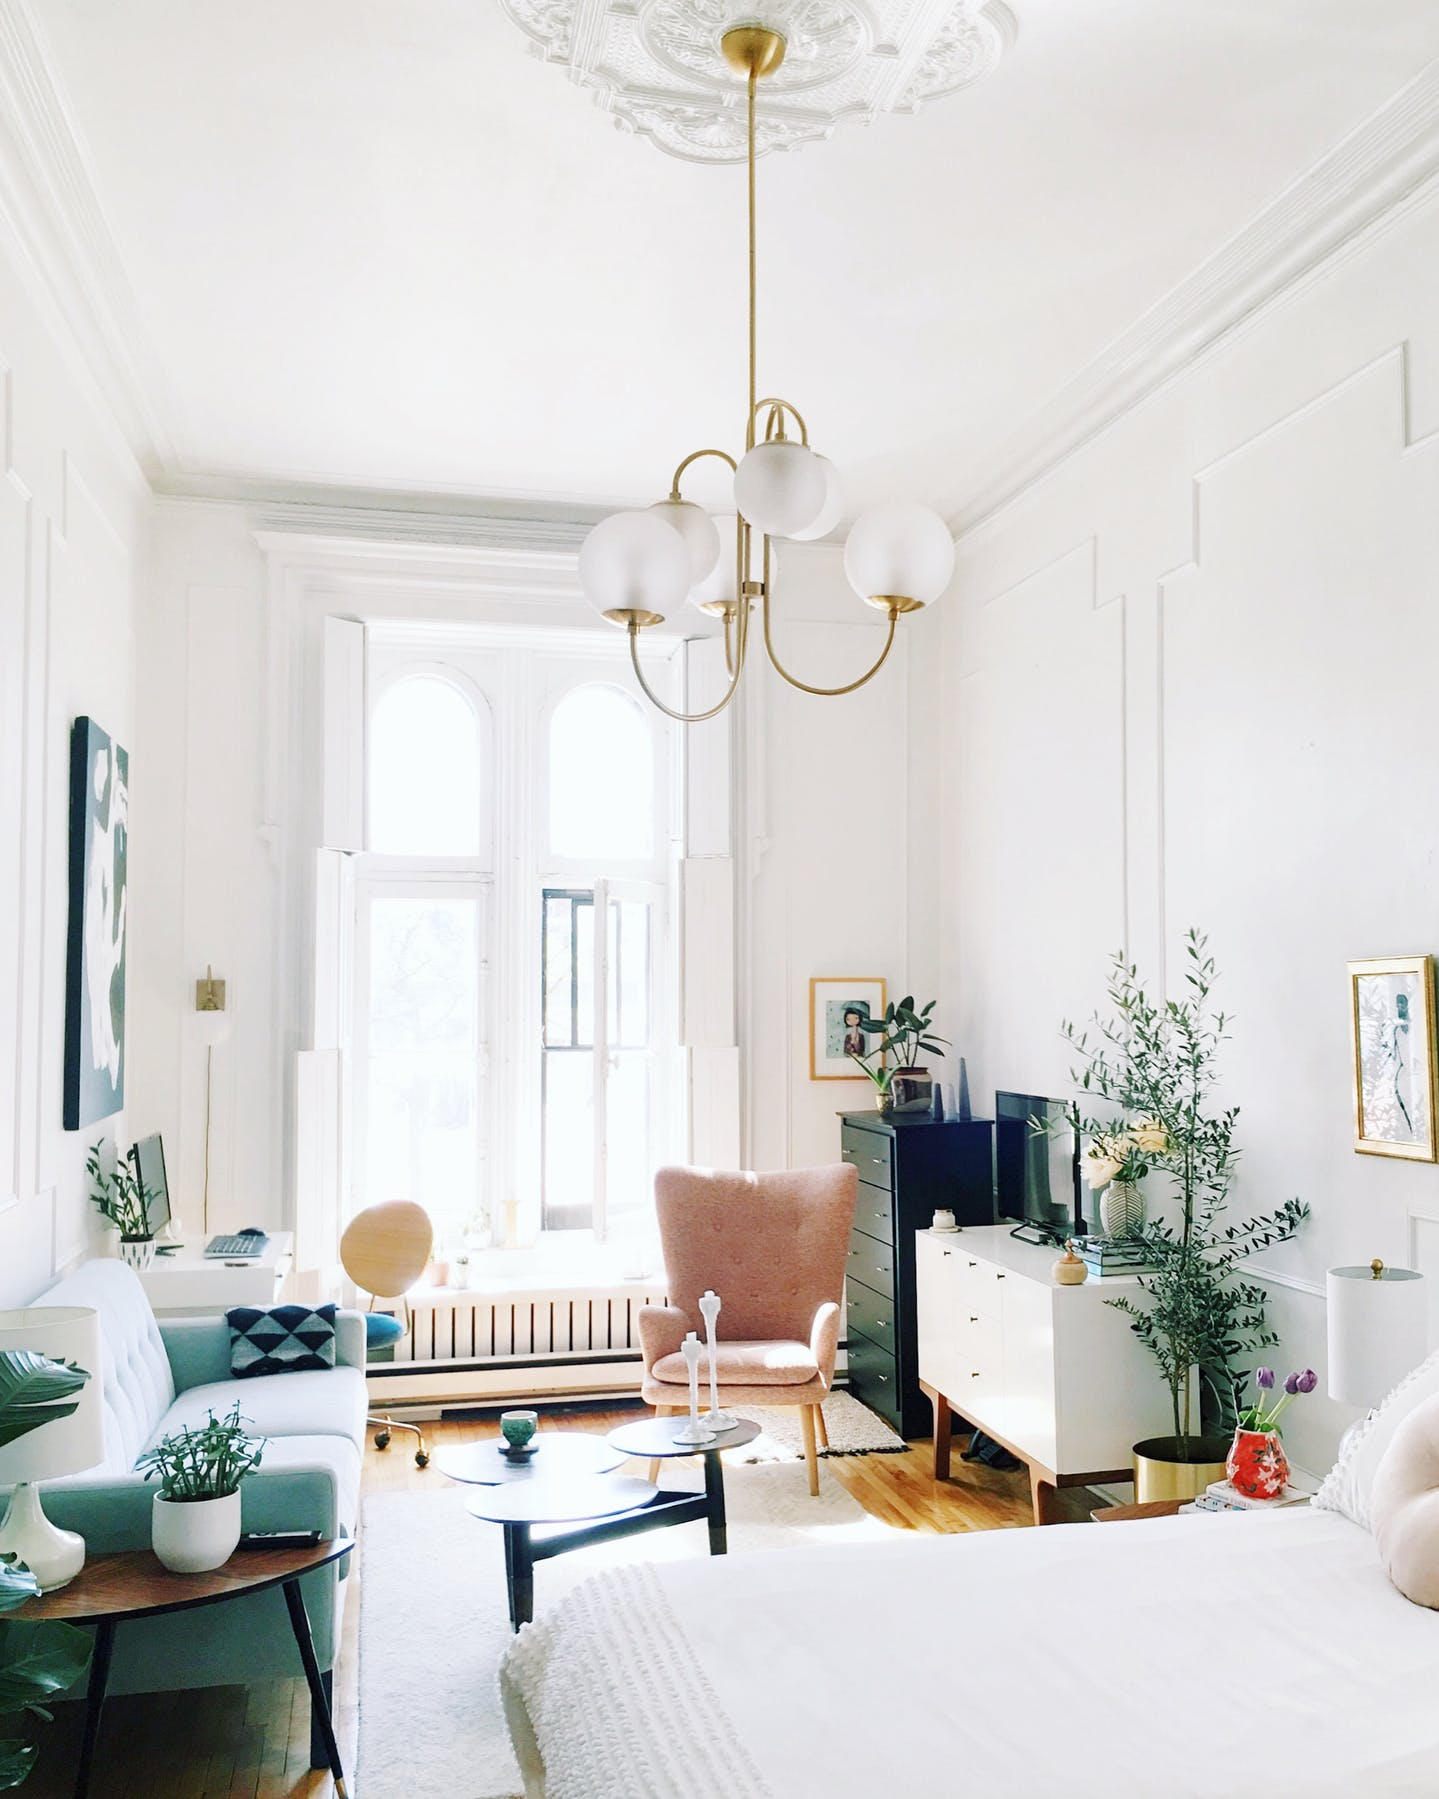 Small Apartment Interior 5 Small Apartment Decorating Tips To Make The Most Of Your Space